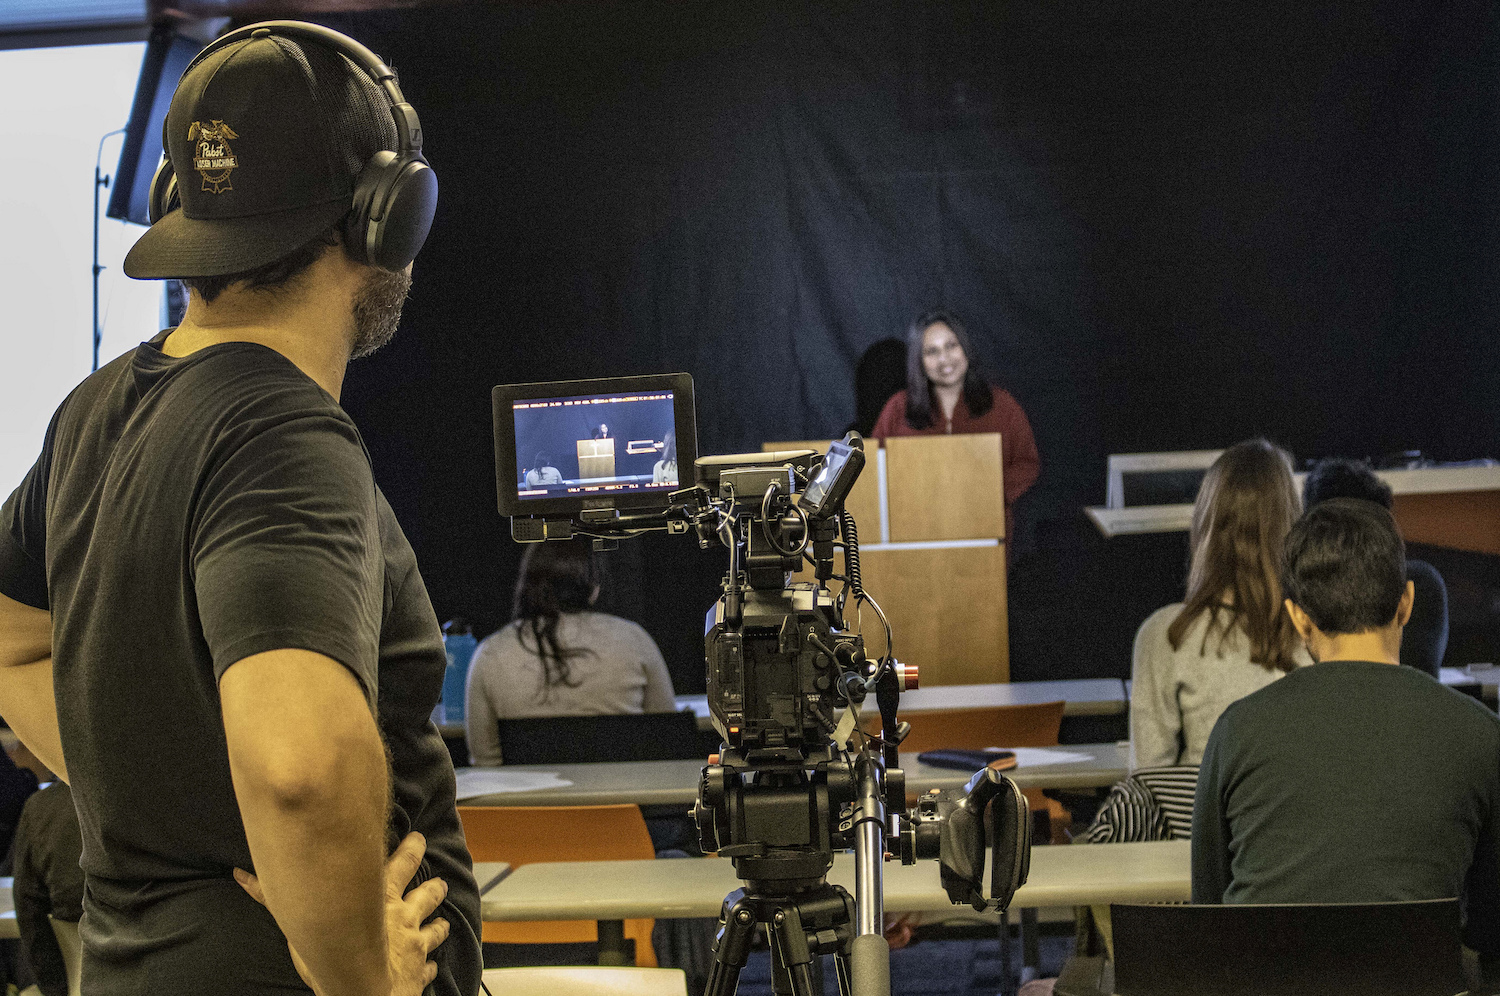 Videographers record the course, which will be made available worldwide for online study. Photo by Mary Braswell